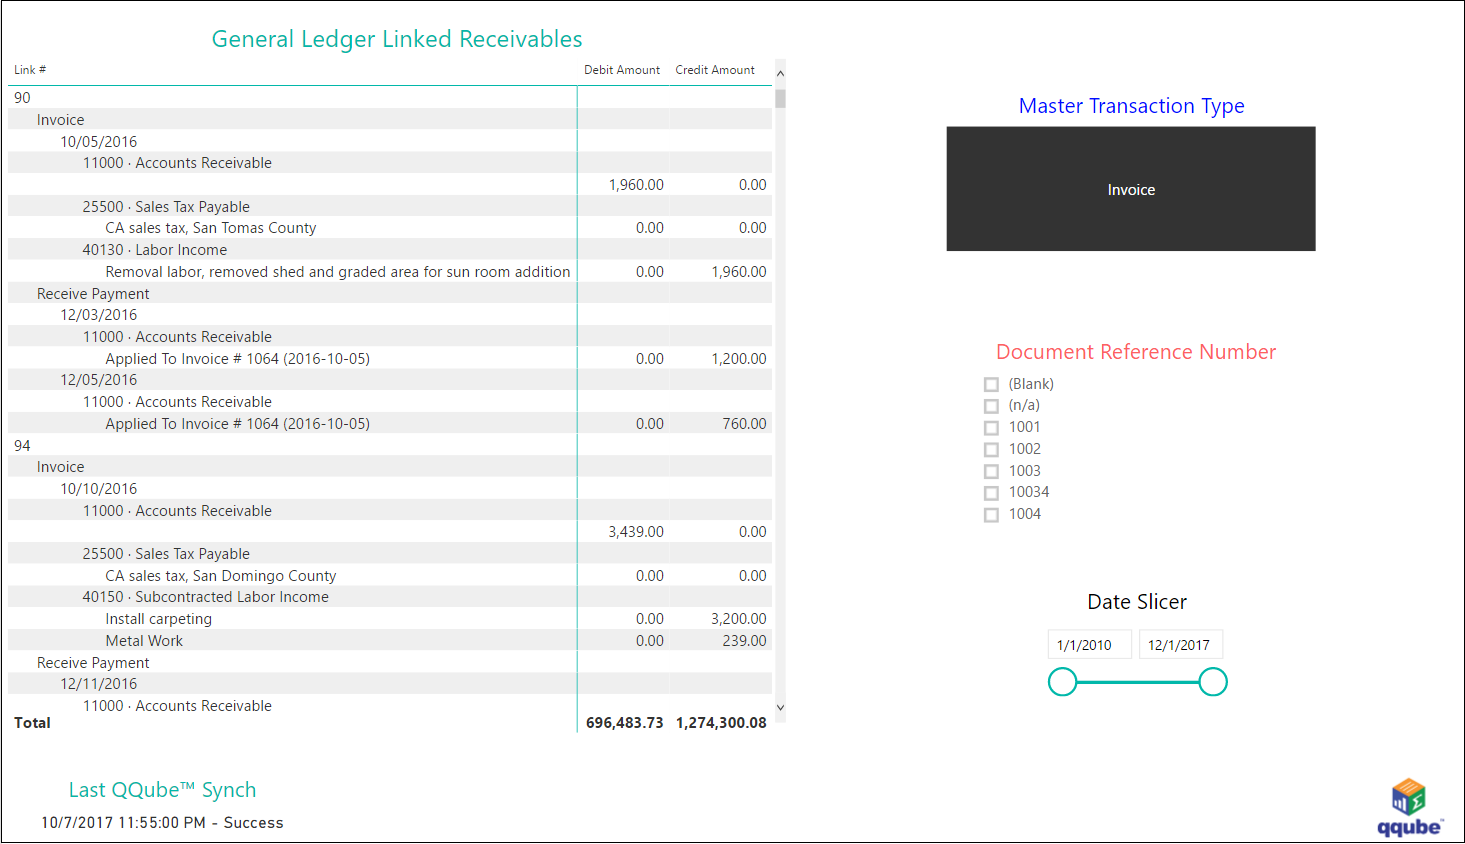 QQube and Power BI - General Ledger Linked Receivables